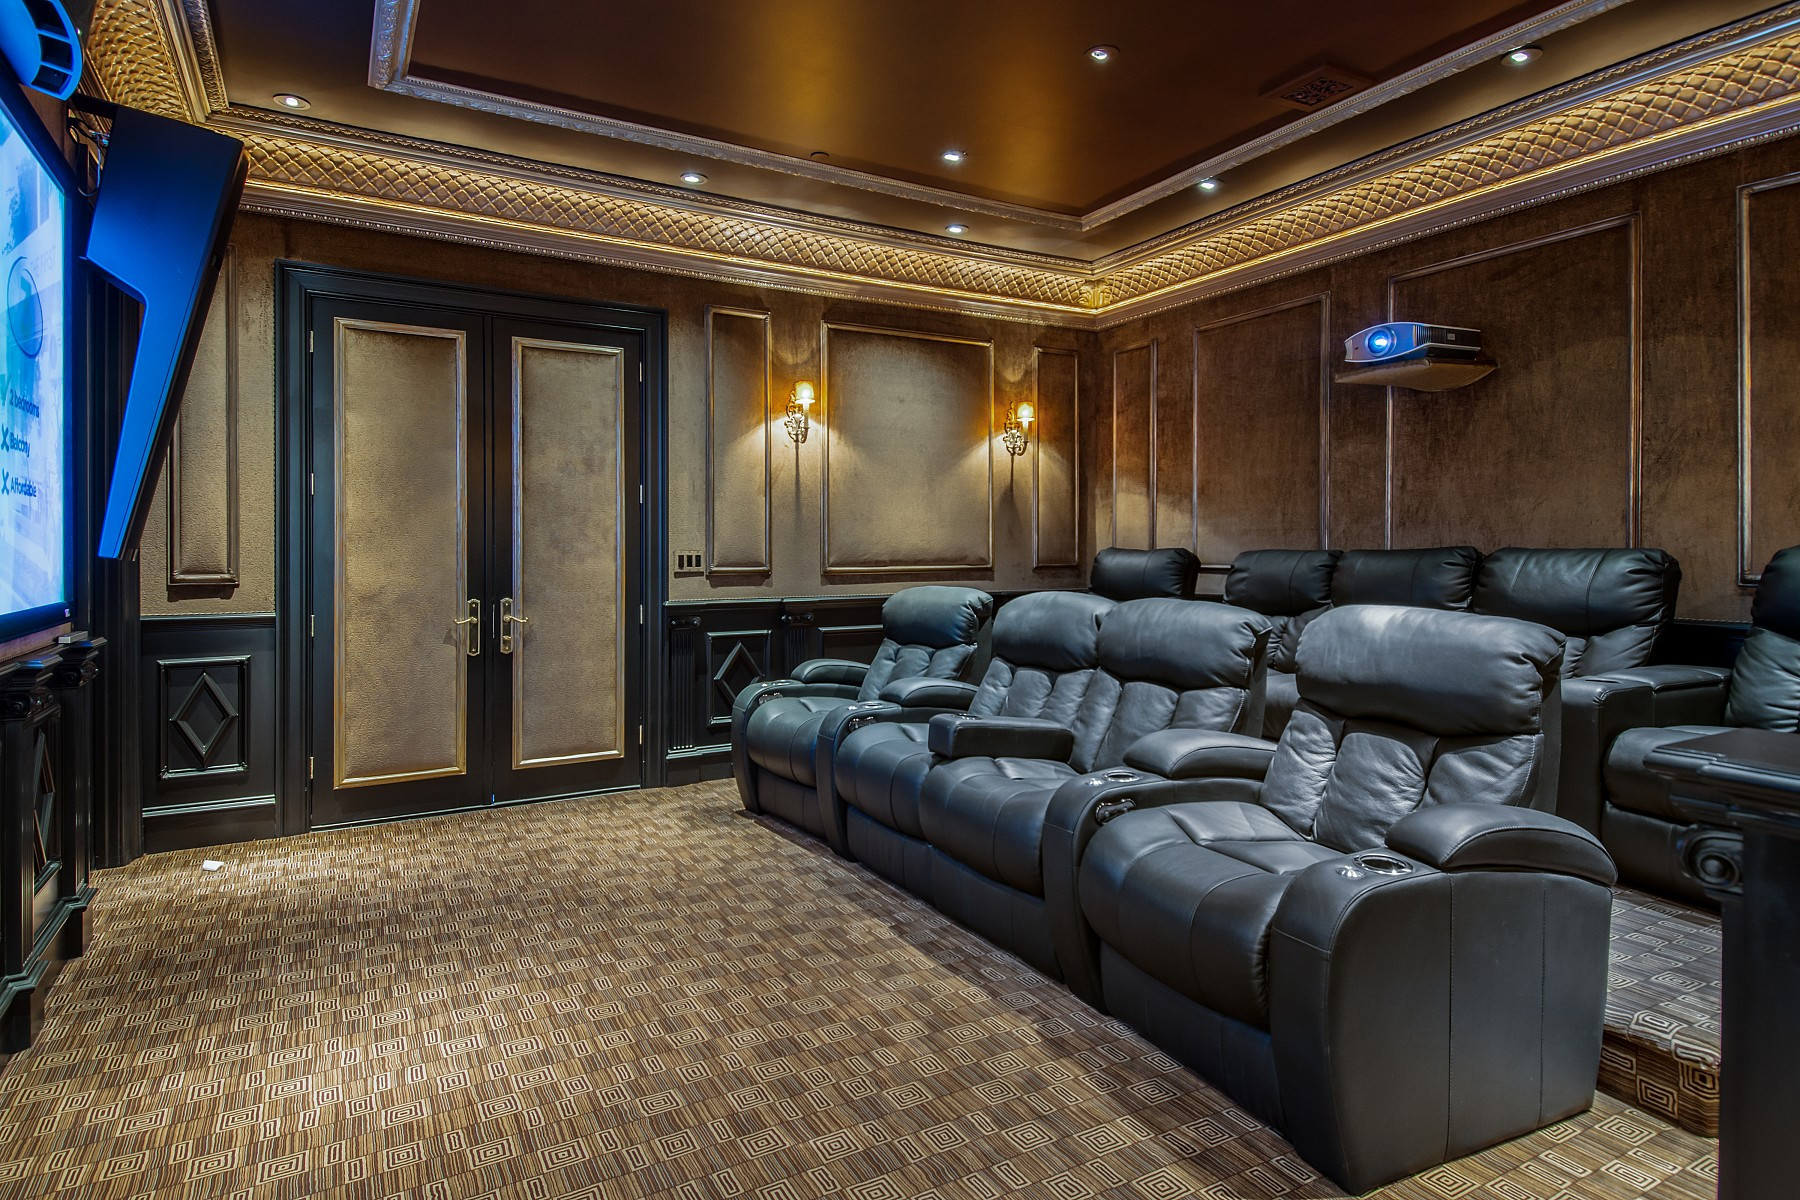 The property boasts a mega cinema room